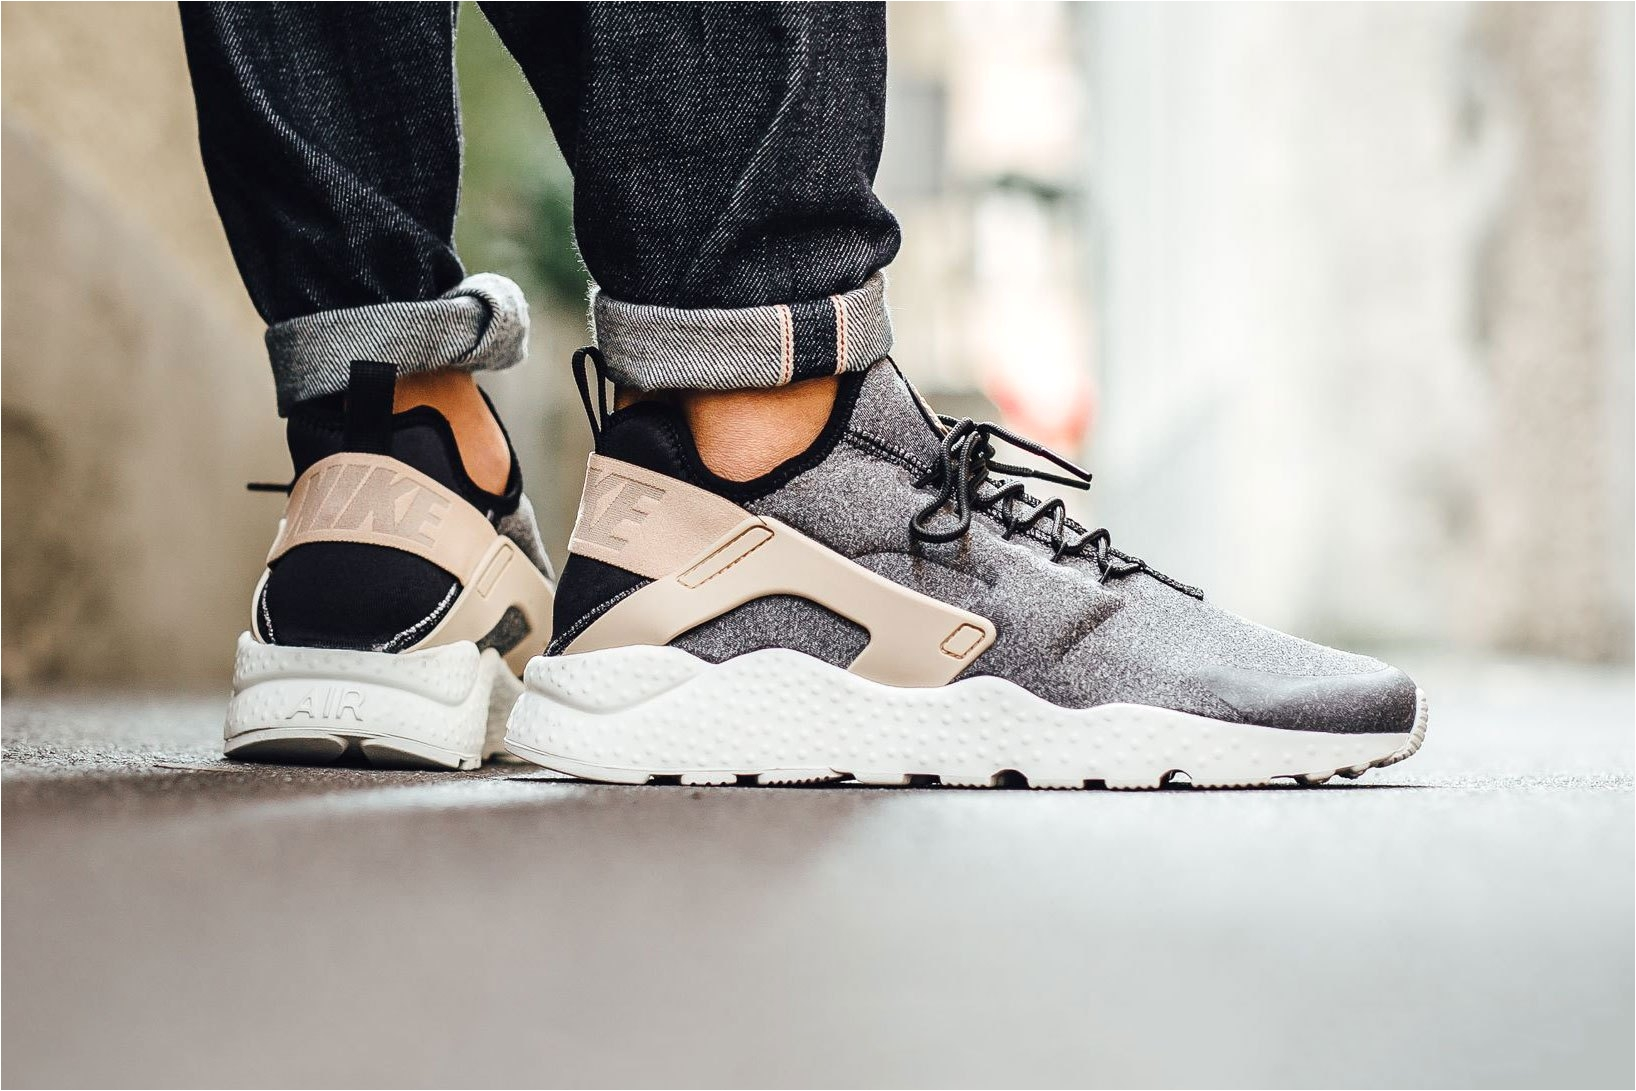 buy authentic nike air huarache run ultra se black tan white trainer for cheap sale with high quality and preferential price and get free one pair of socks